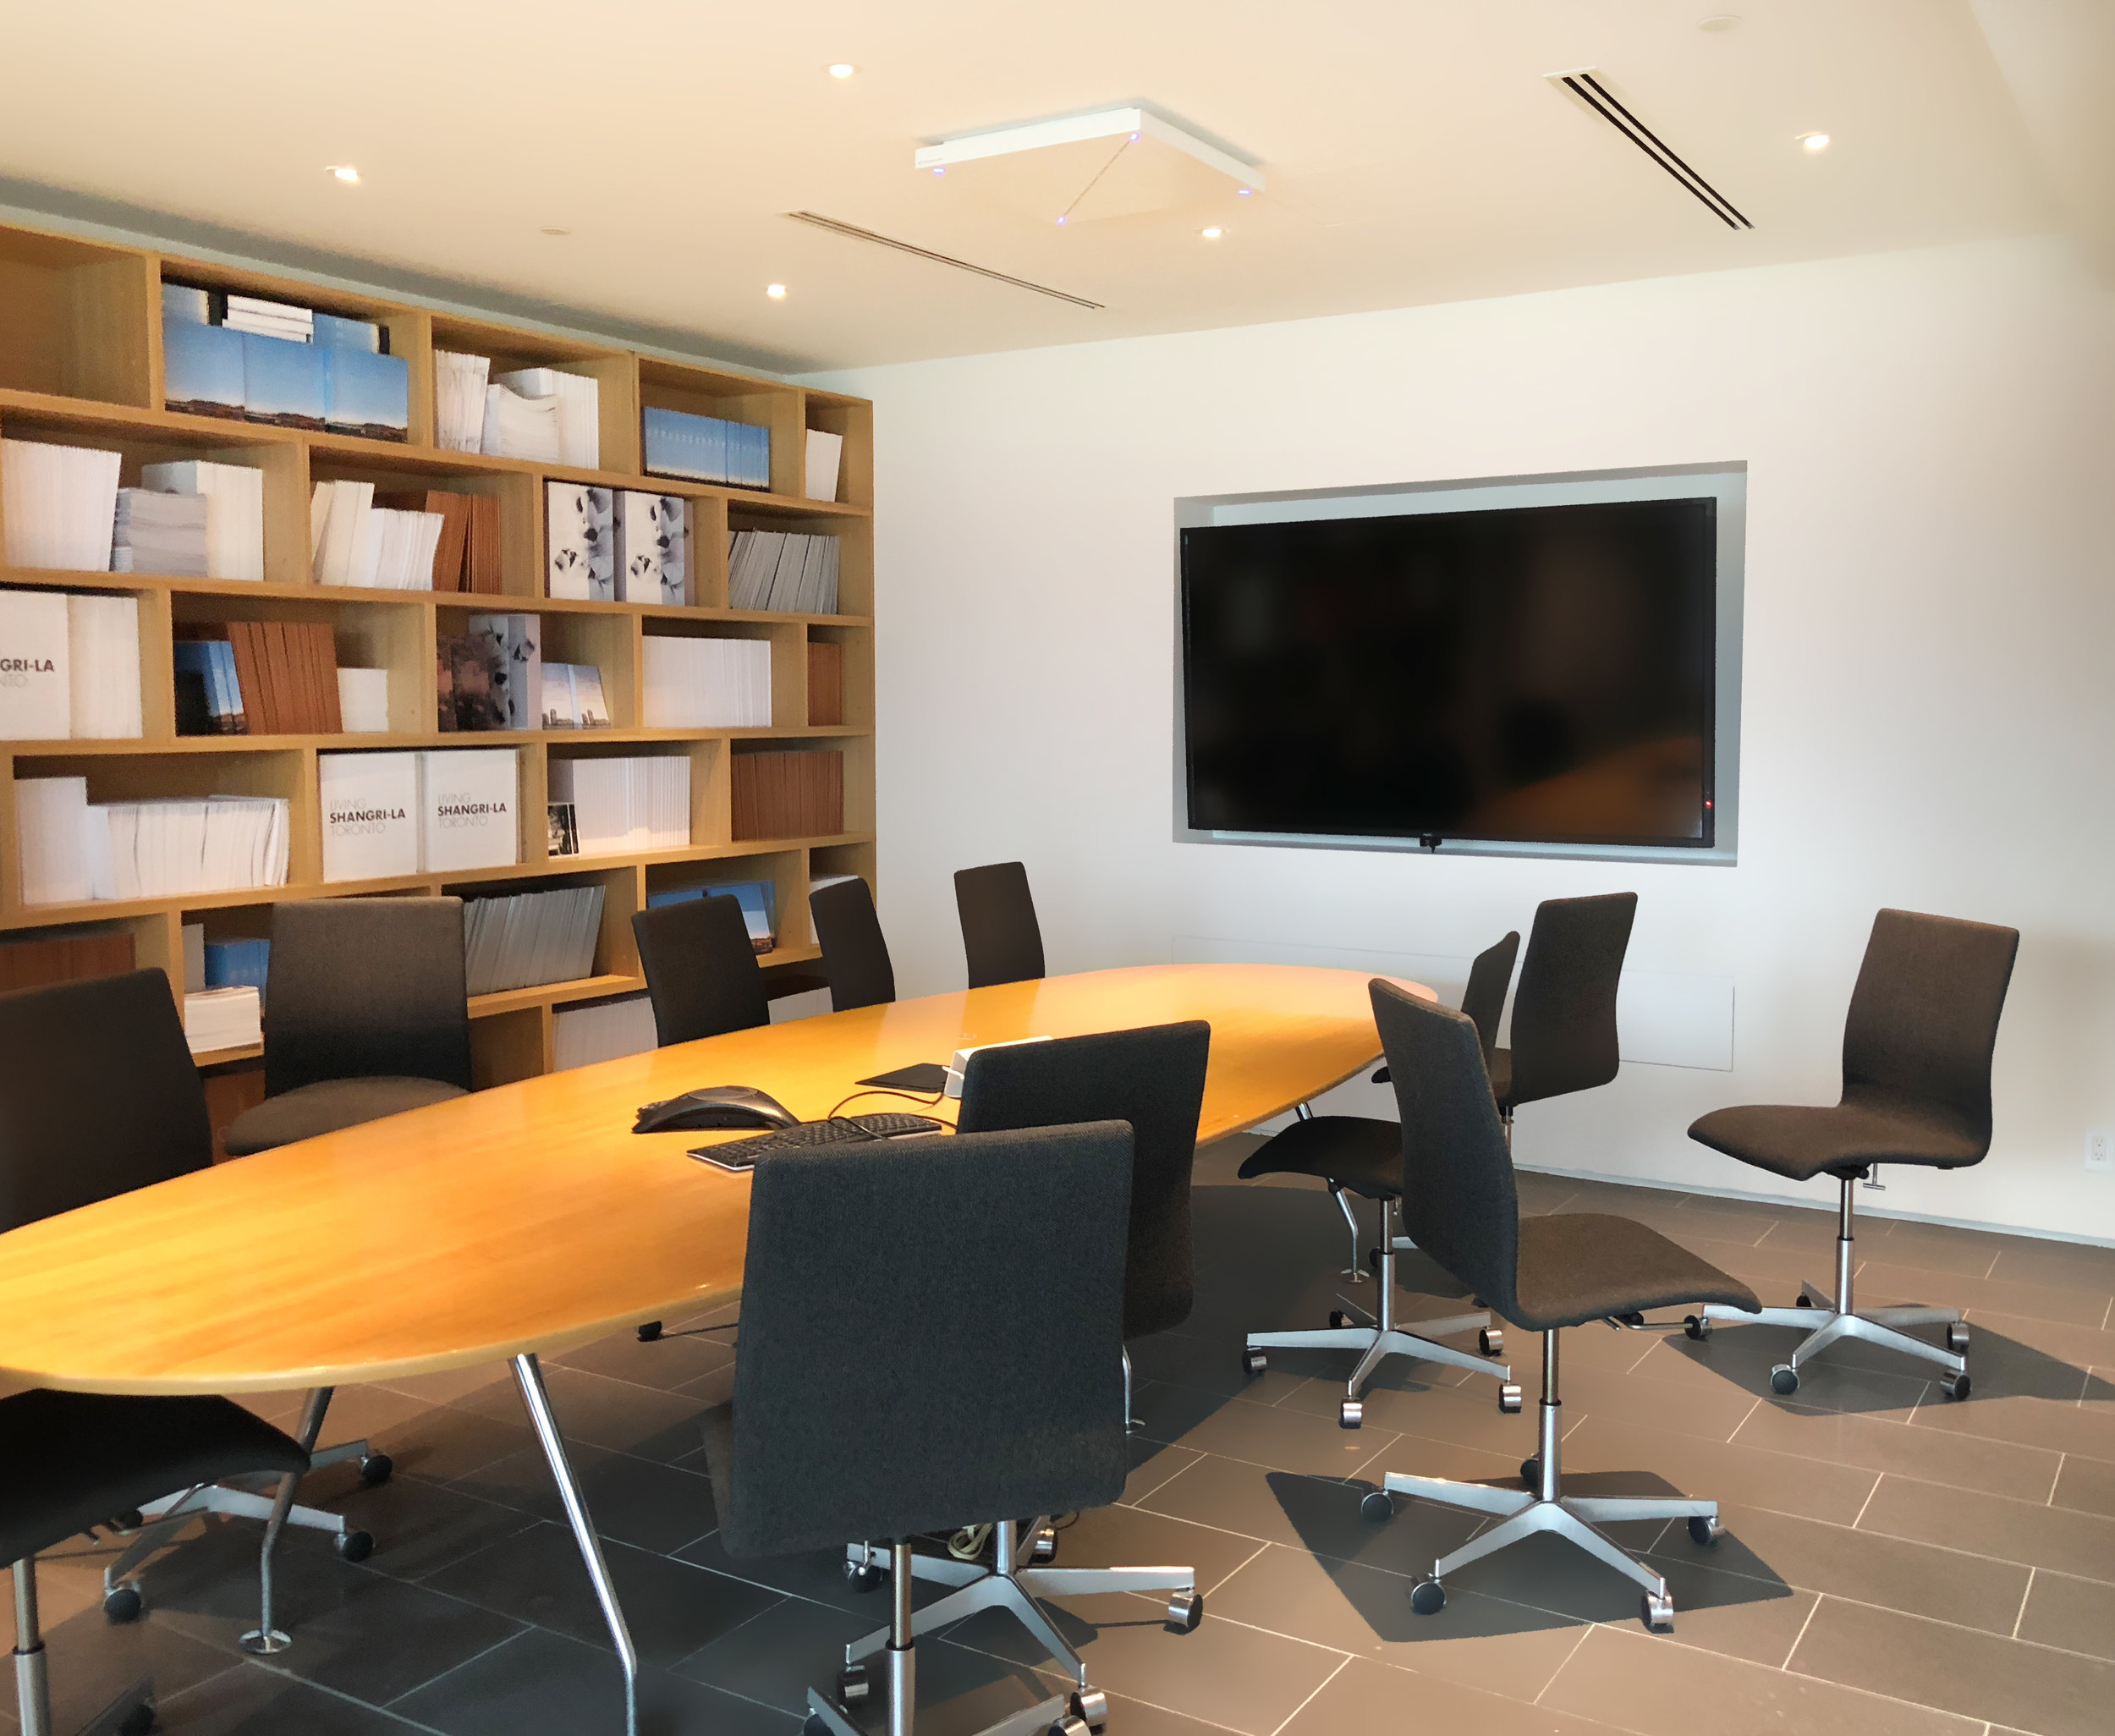 A highly utilized space in the office, this meeting room offers an ideal video conferencing capability, with a minute Panacast camera that captures every corner.